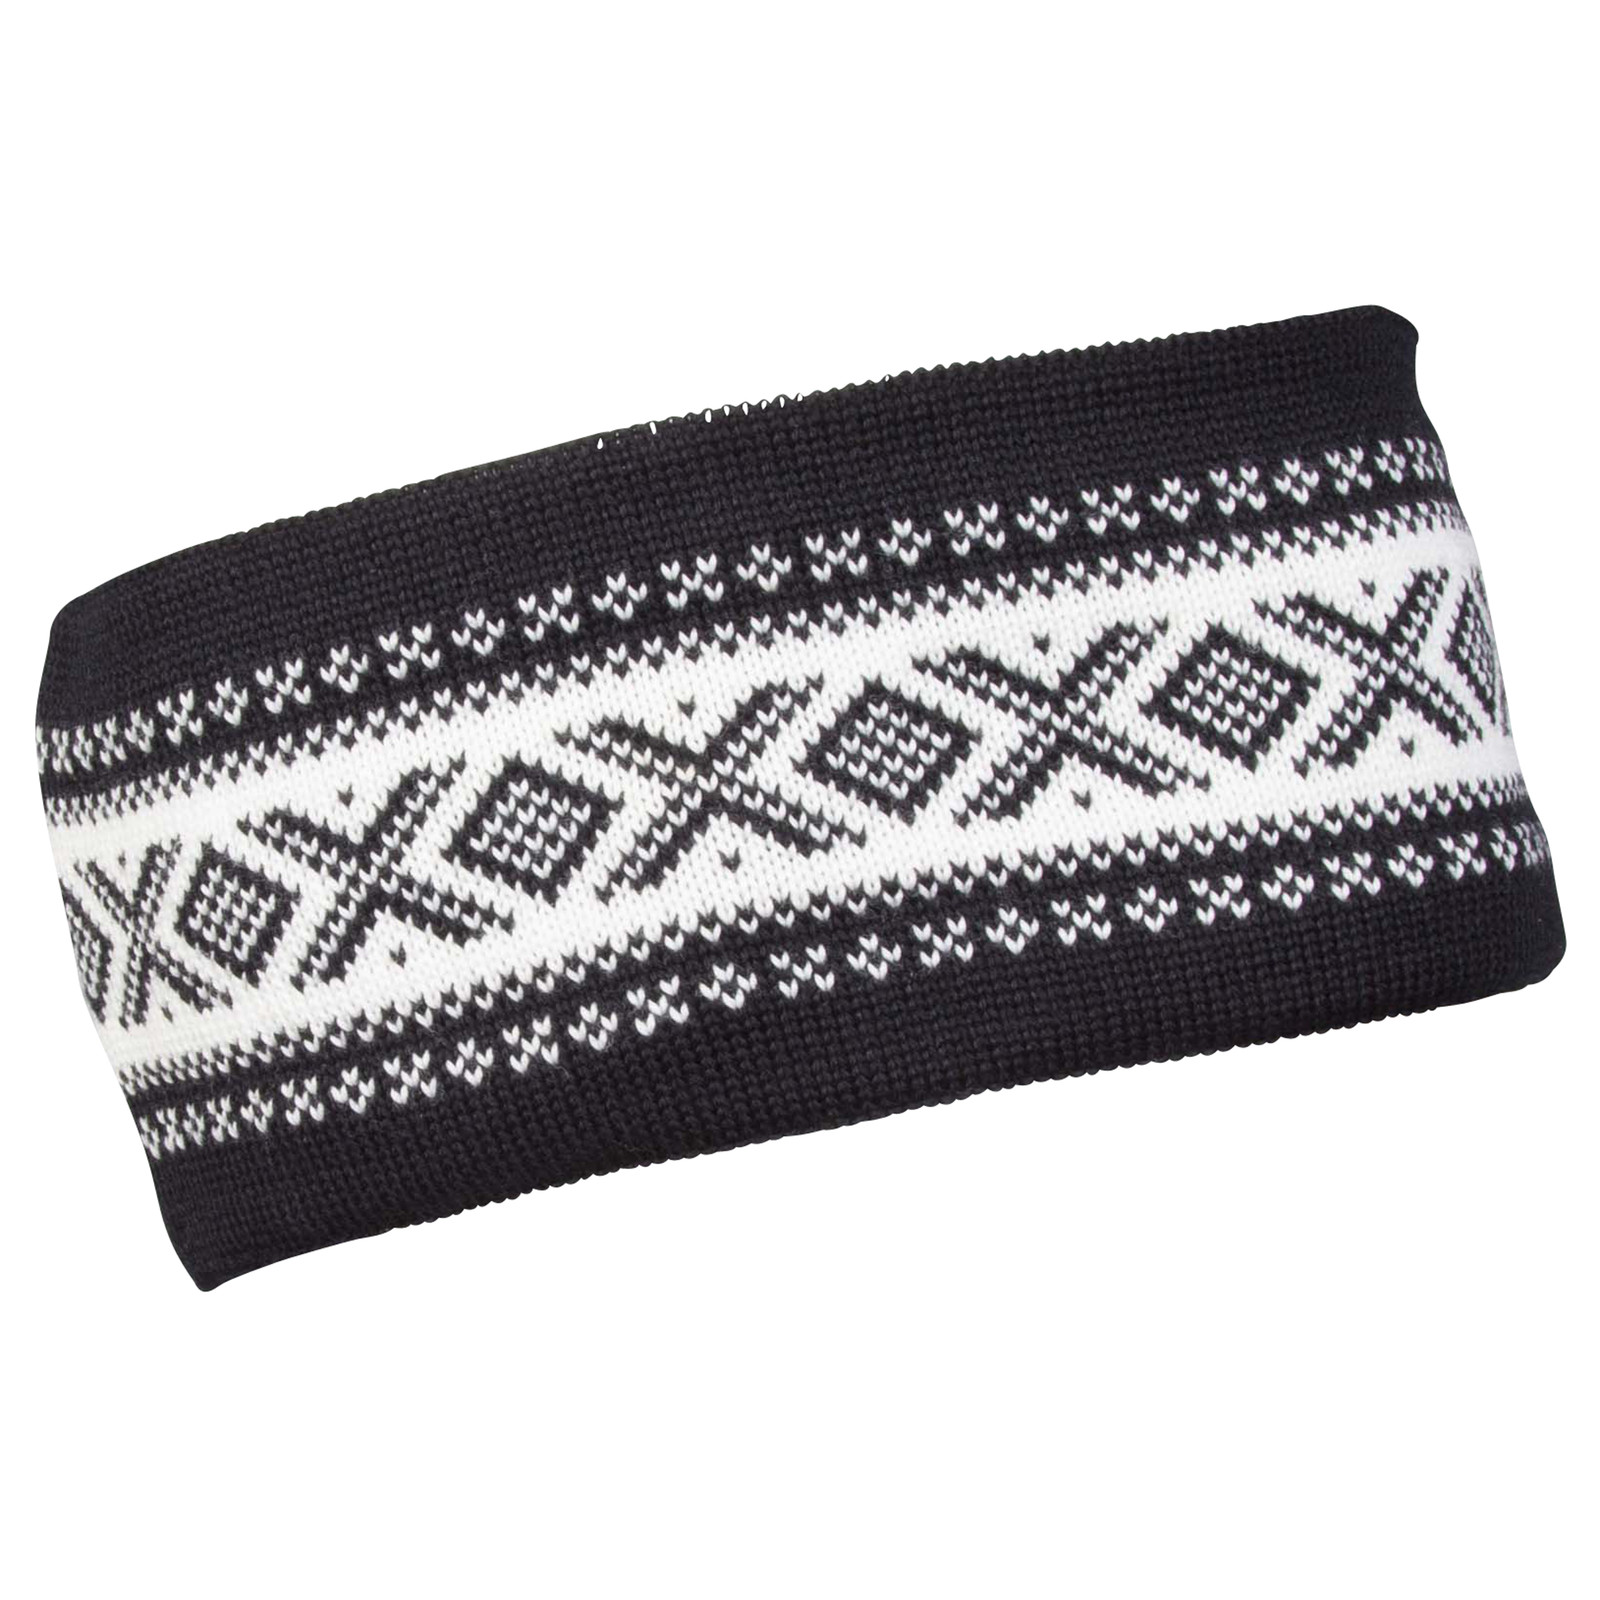 Dale of Norway Cortina Merino Headband - Black/Off White, 26021-F